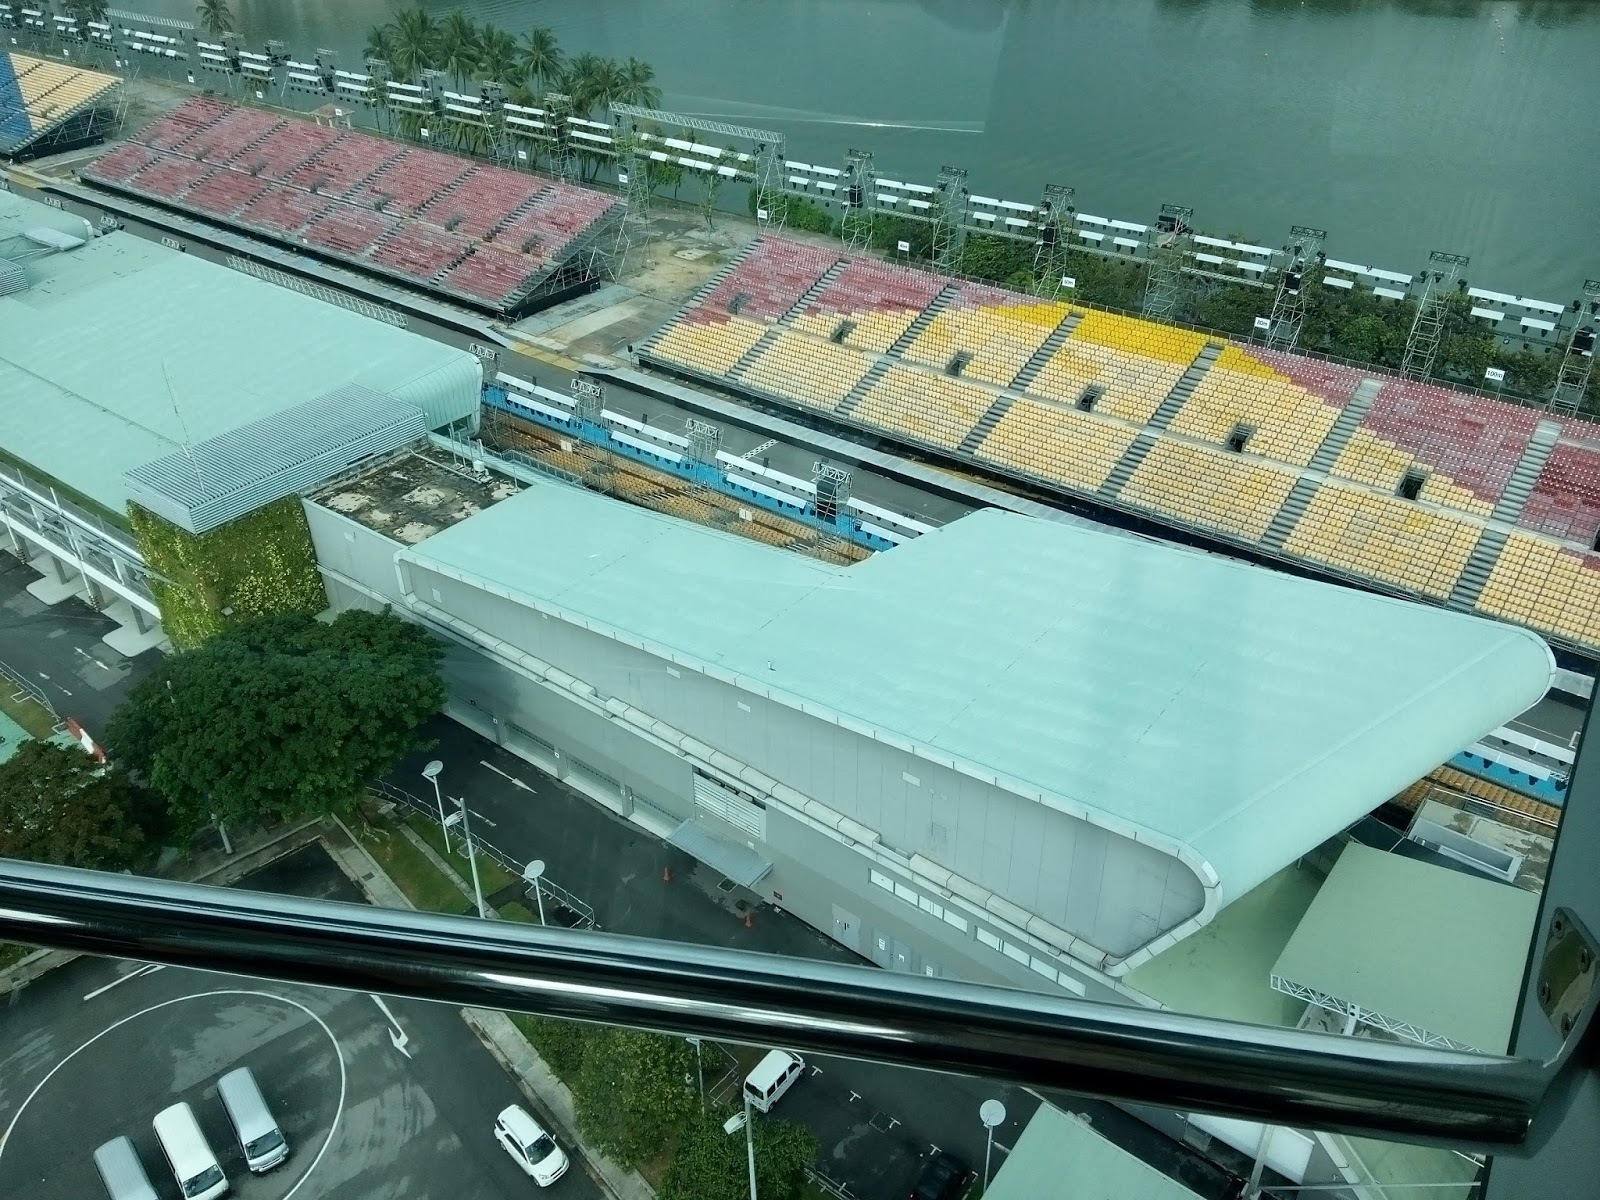 for example if you look at the direction of marina bay street circuit then on that side of the glass there will be an explanation about that